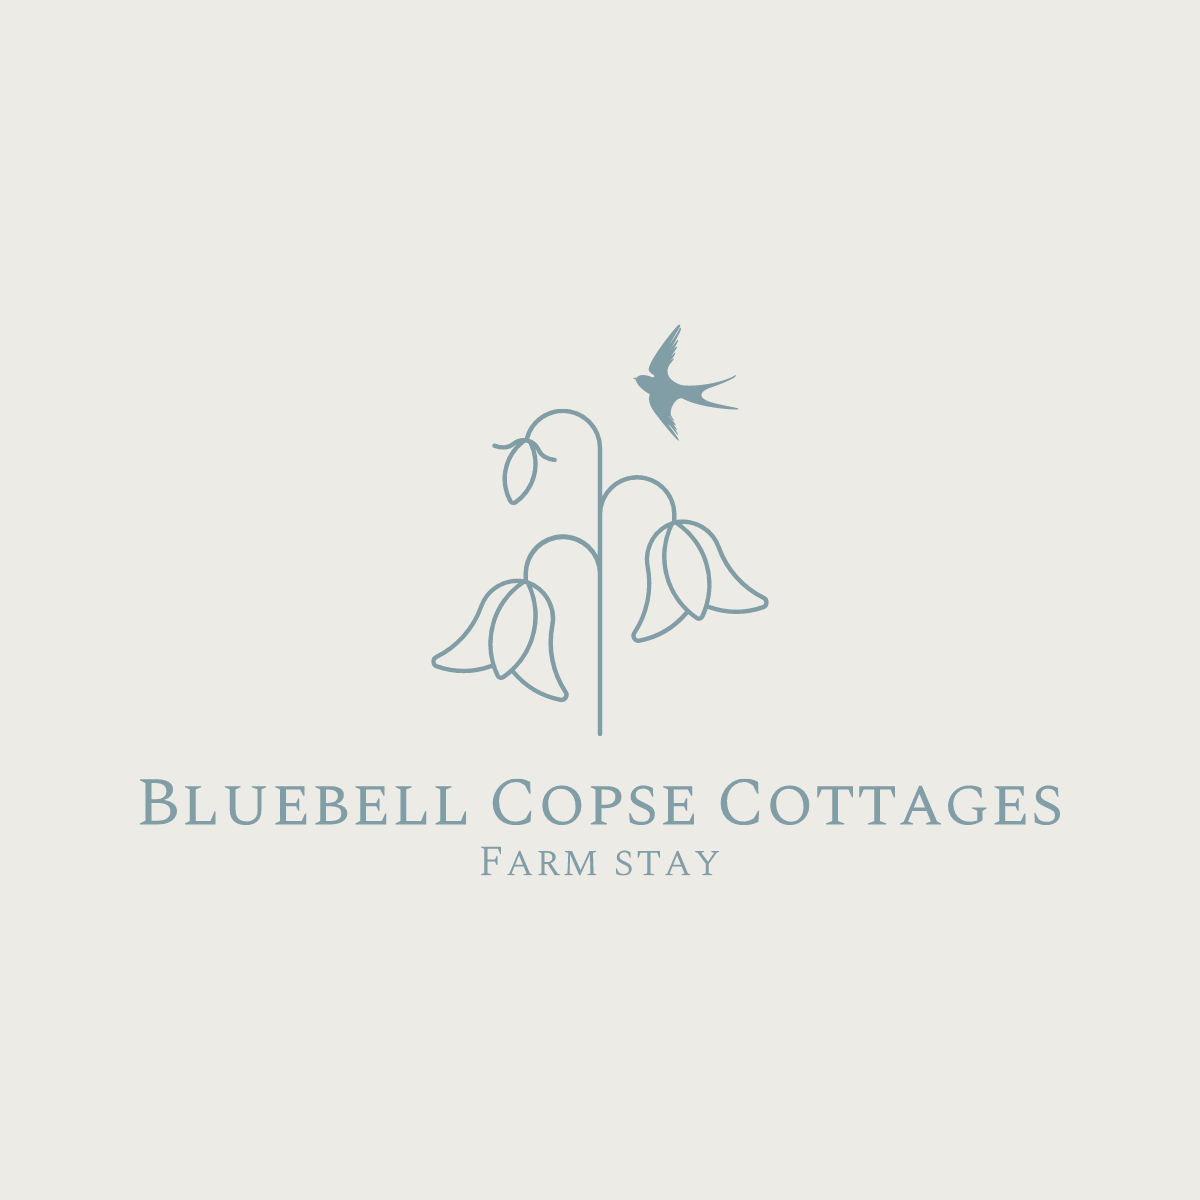 bluebell copse cottages